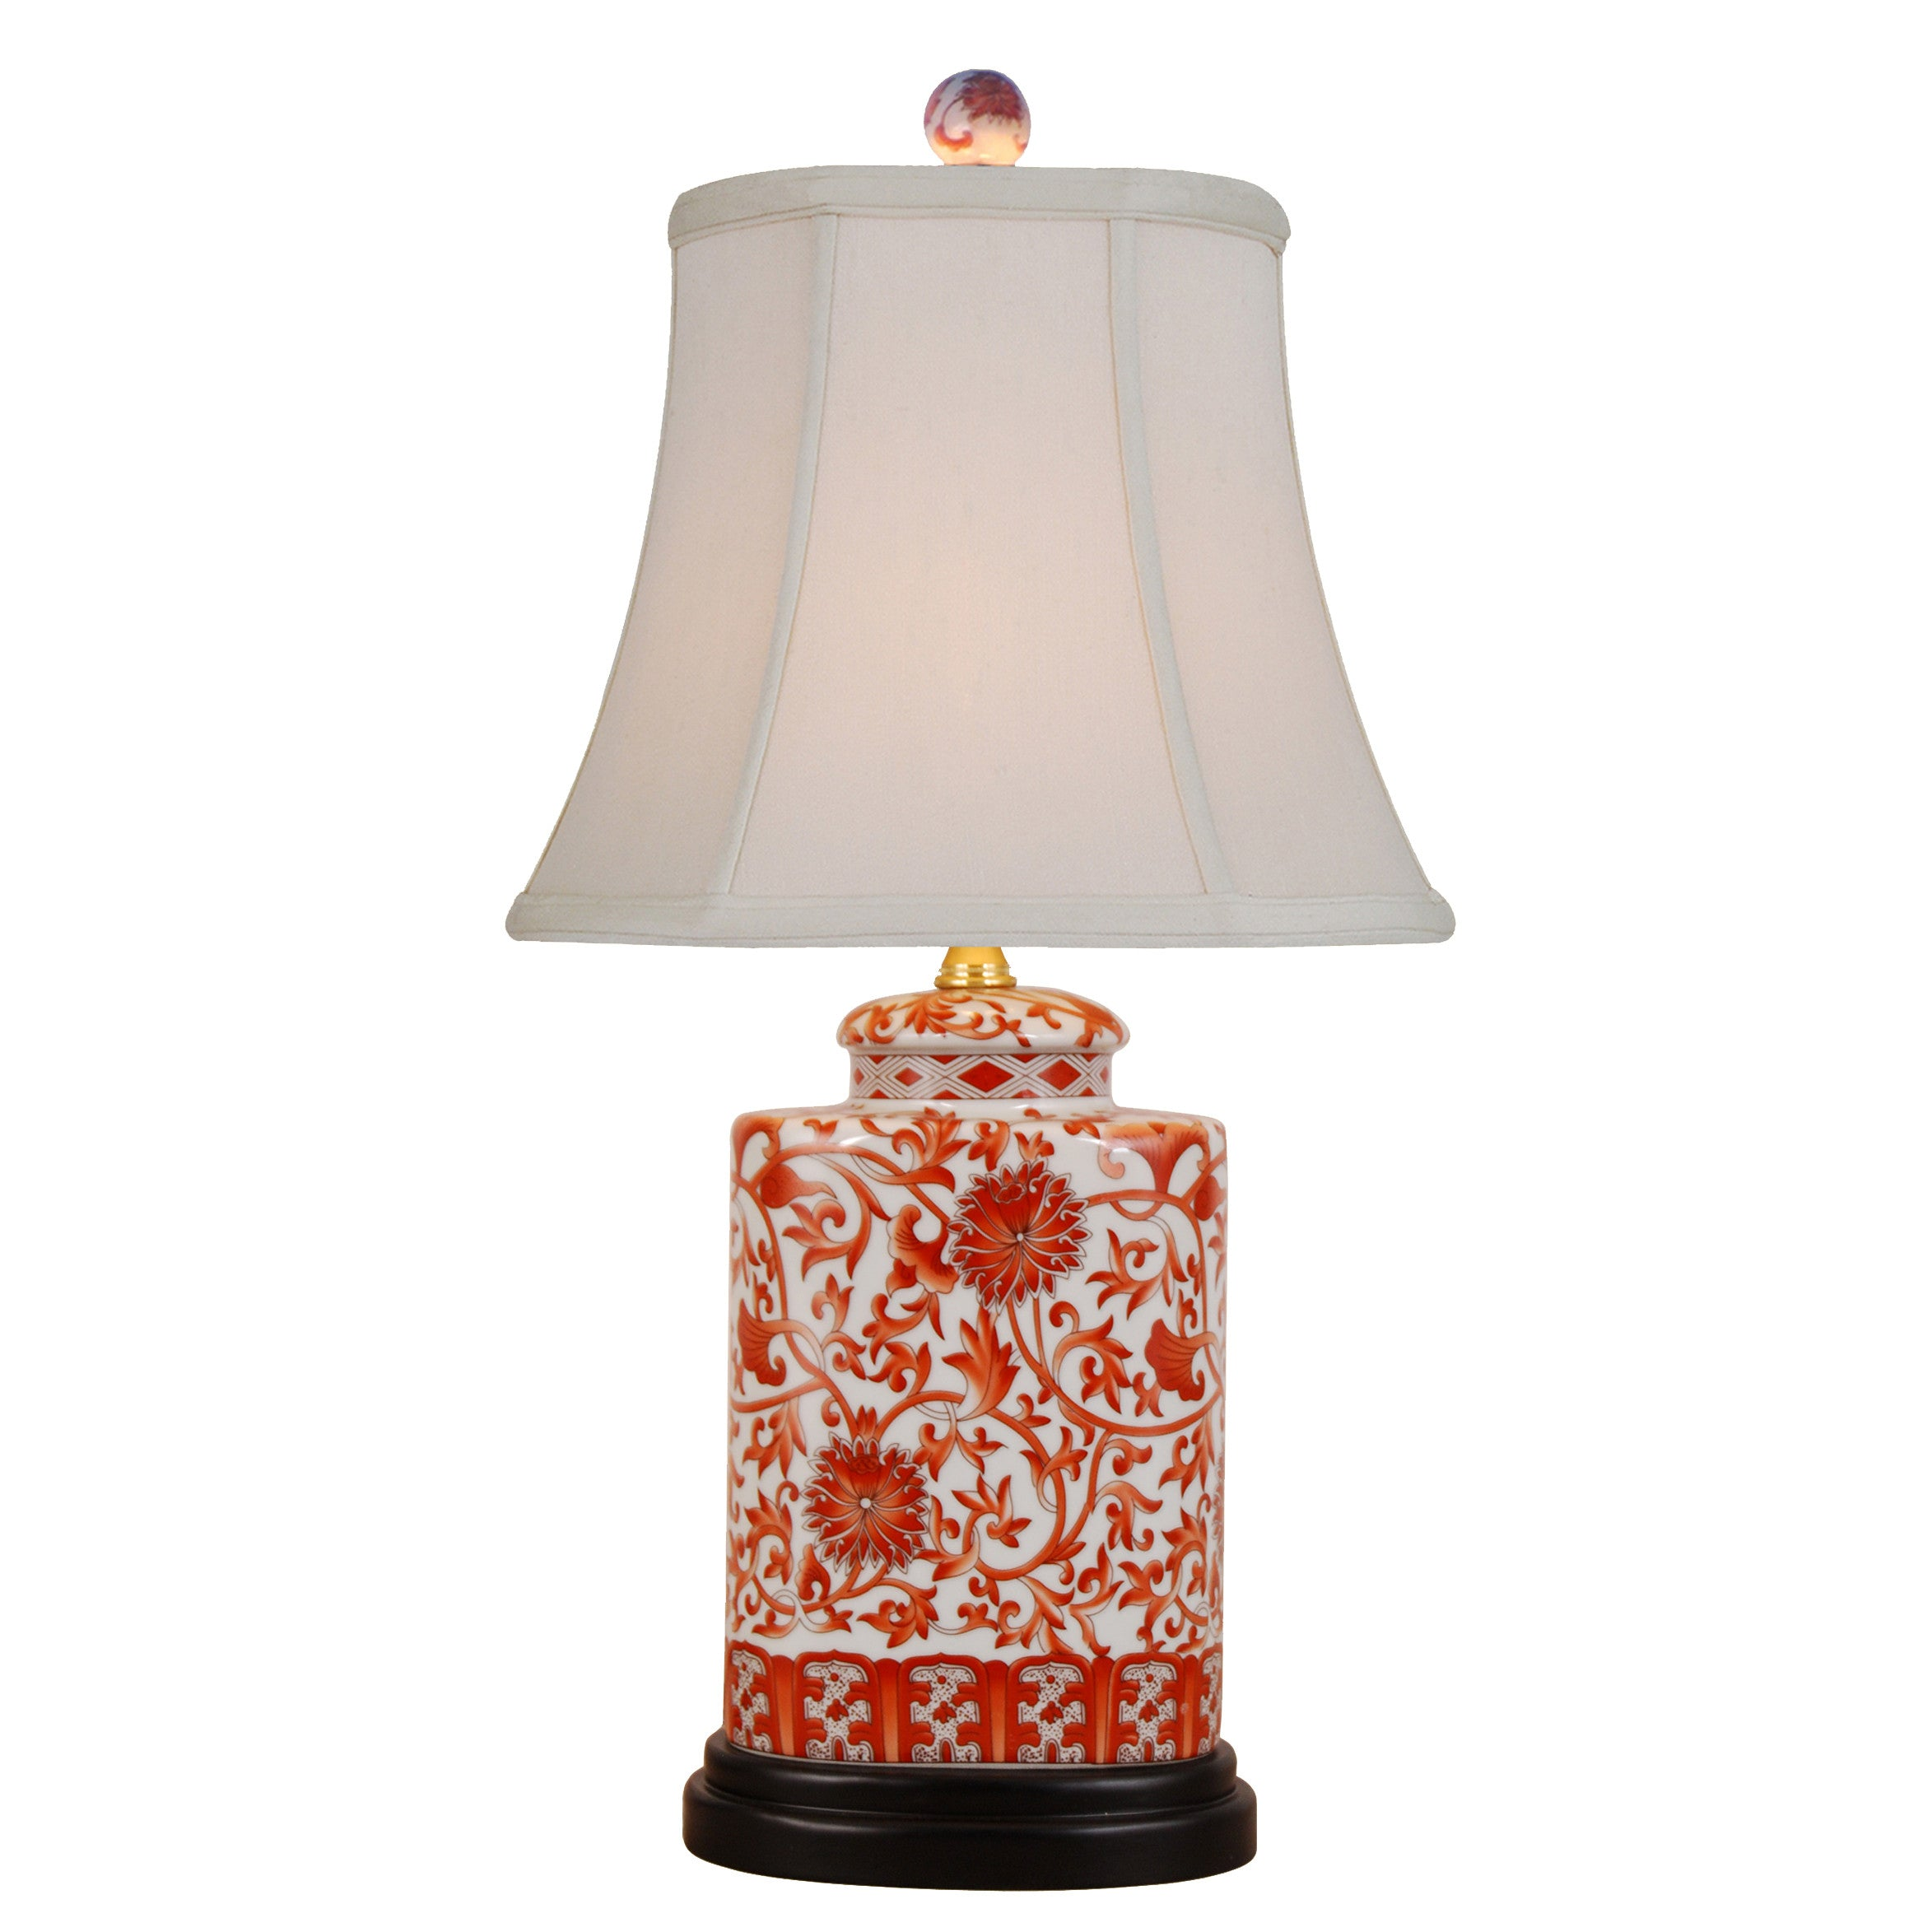 Coral Floral Oval Table Lamp